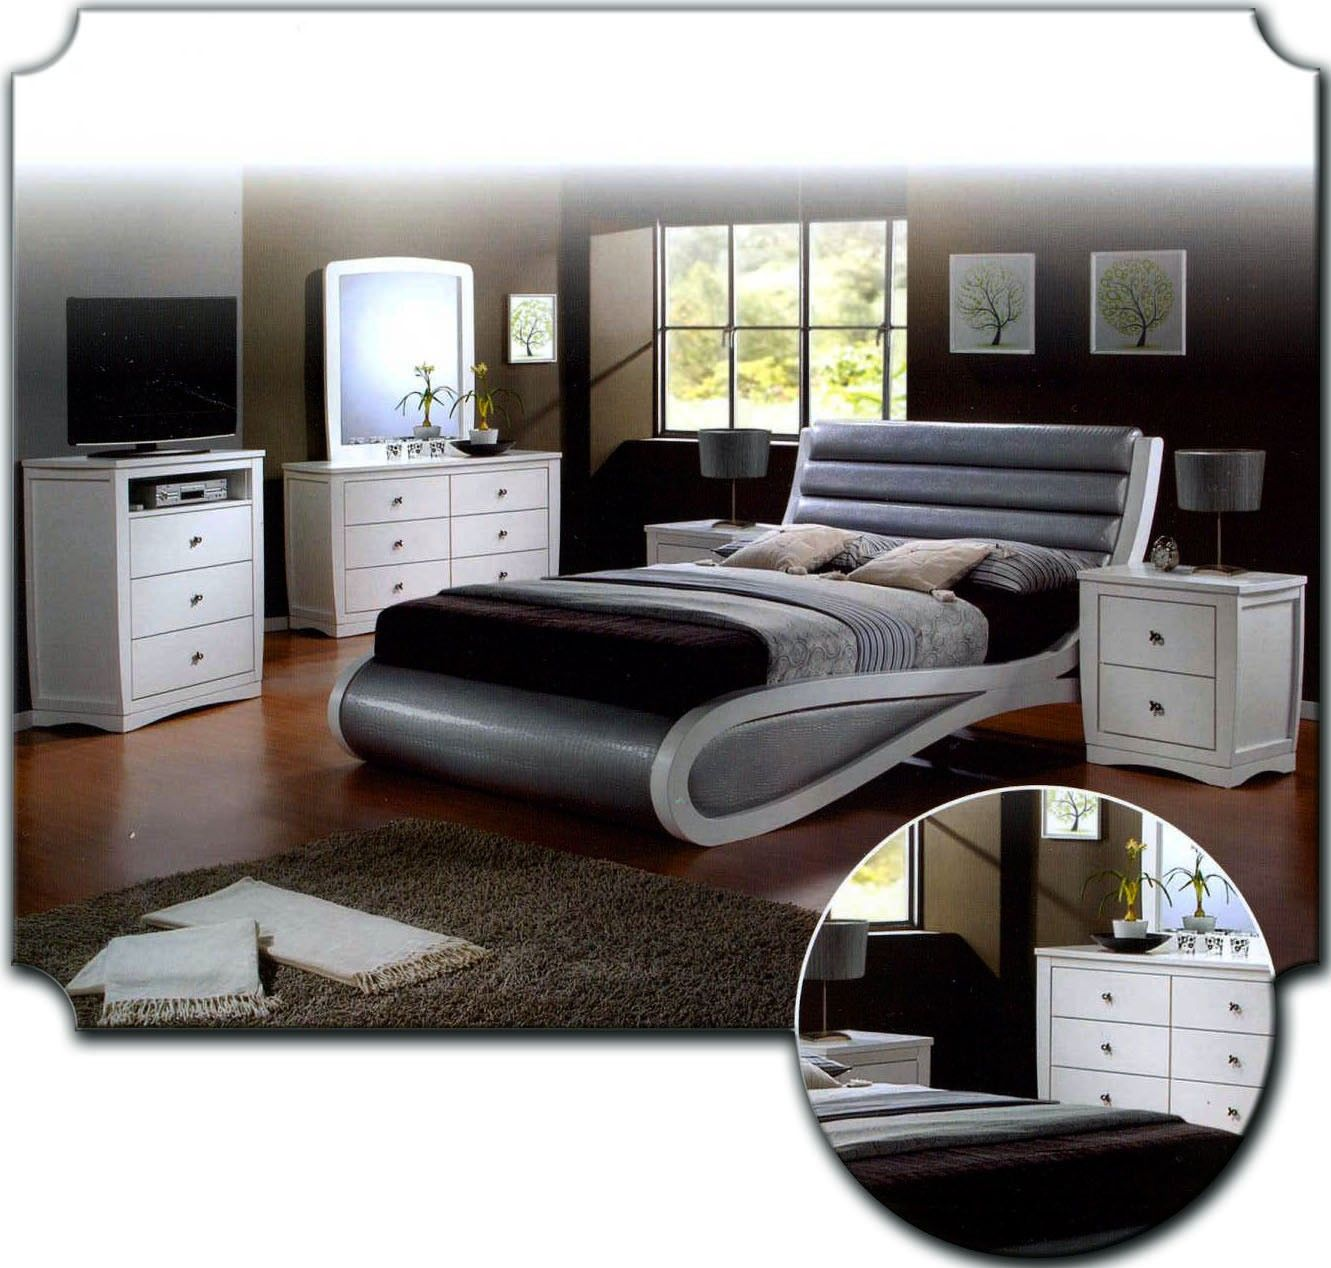 Bedroom Sets For Teens bedroom-ideas-for-teenage-guys-teen-platform-bedroom-sets-teenage